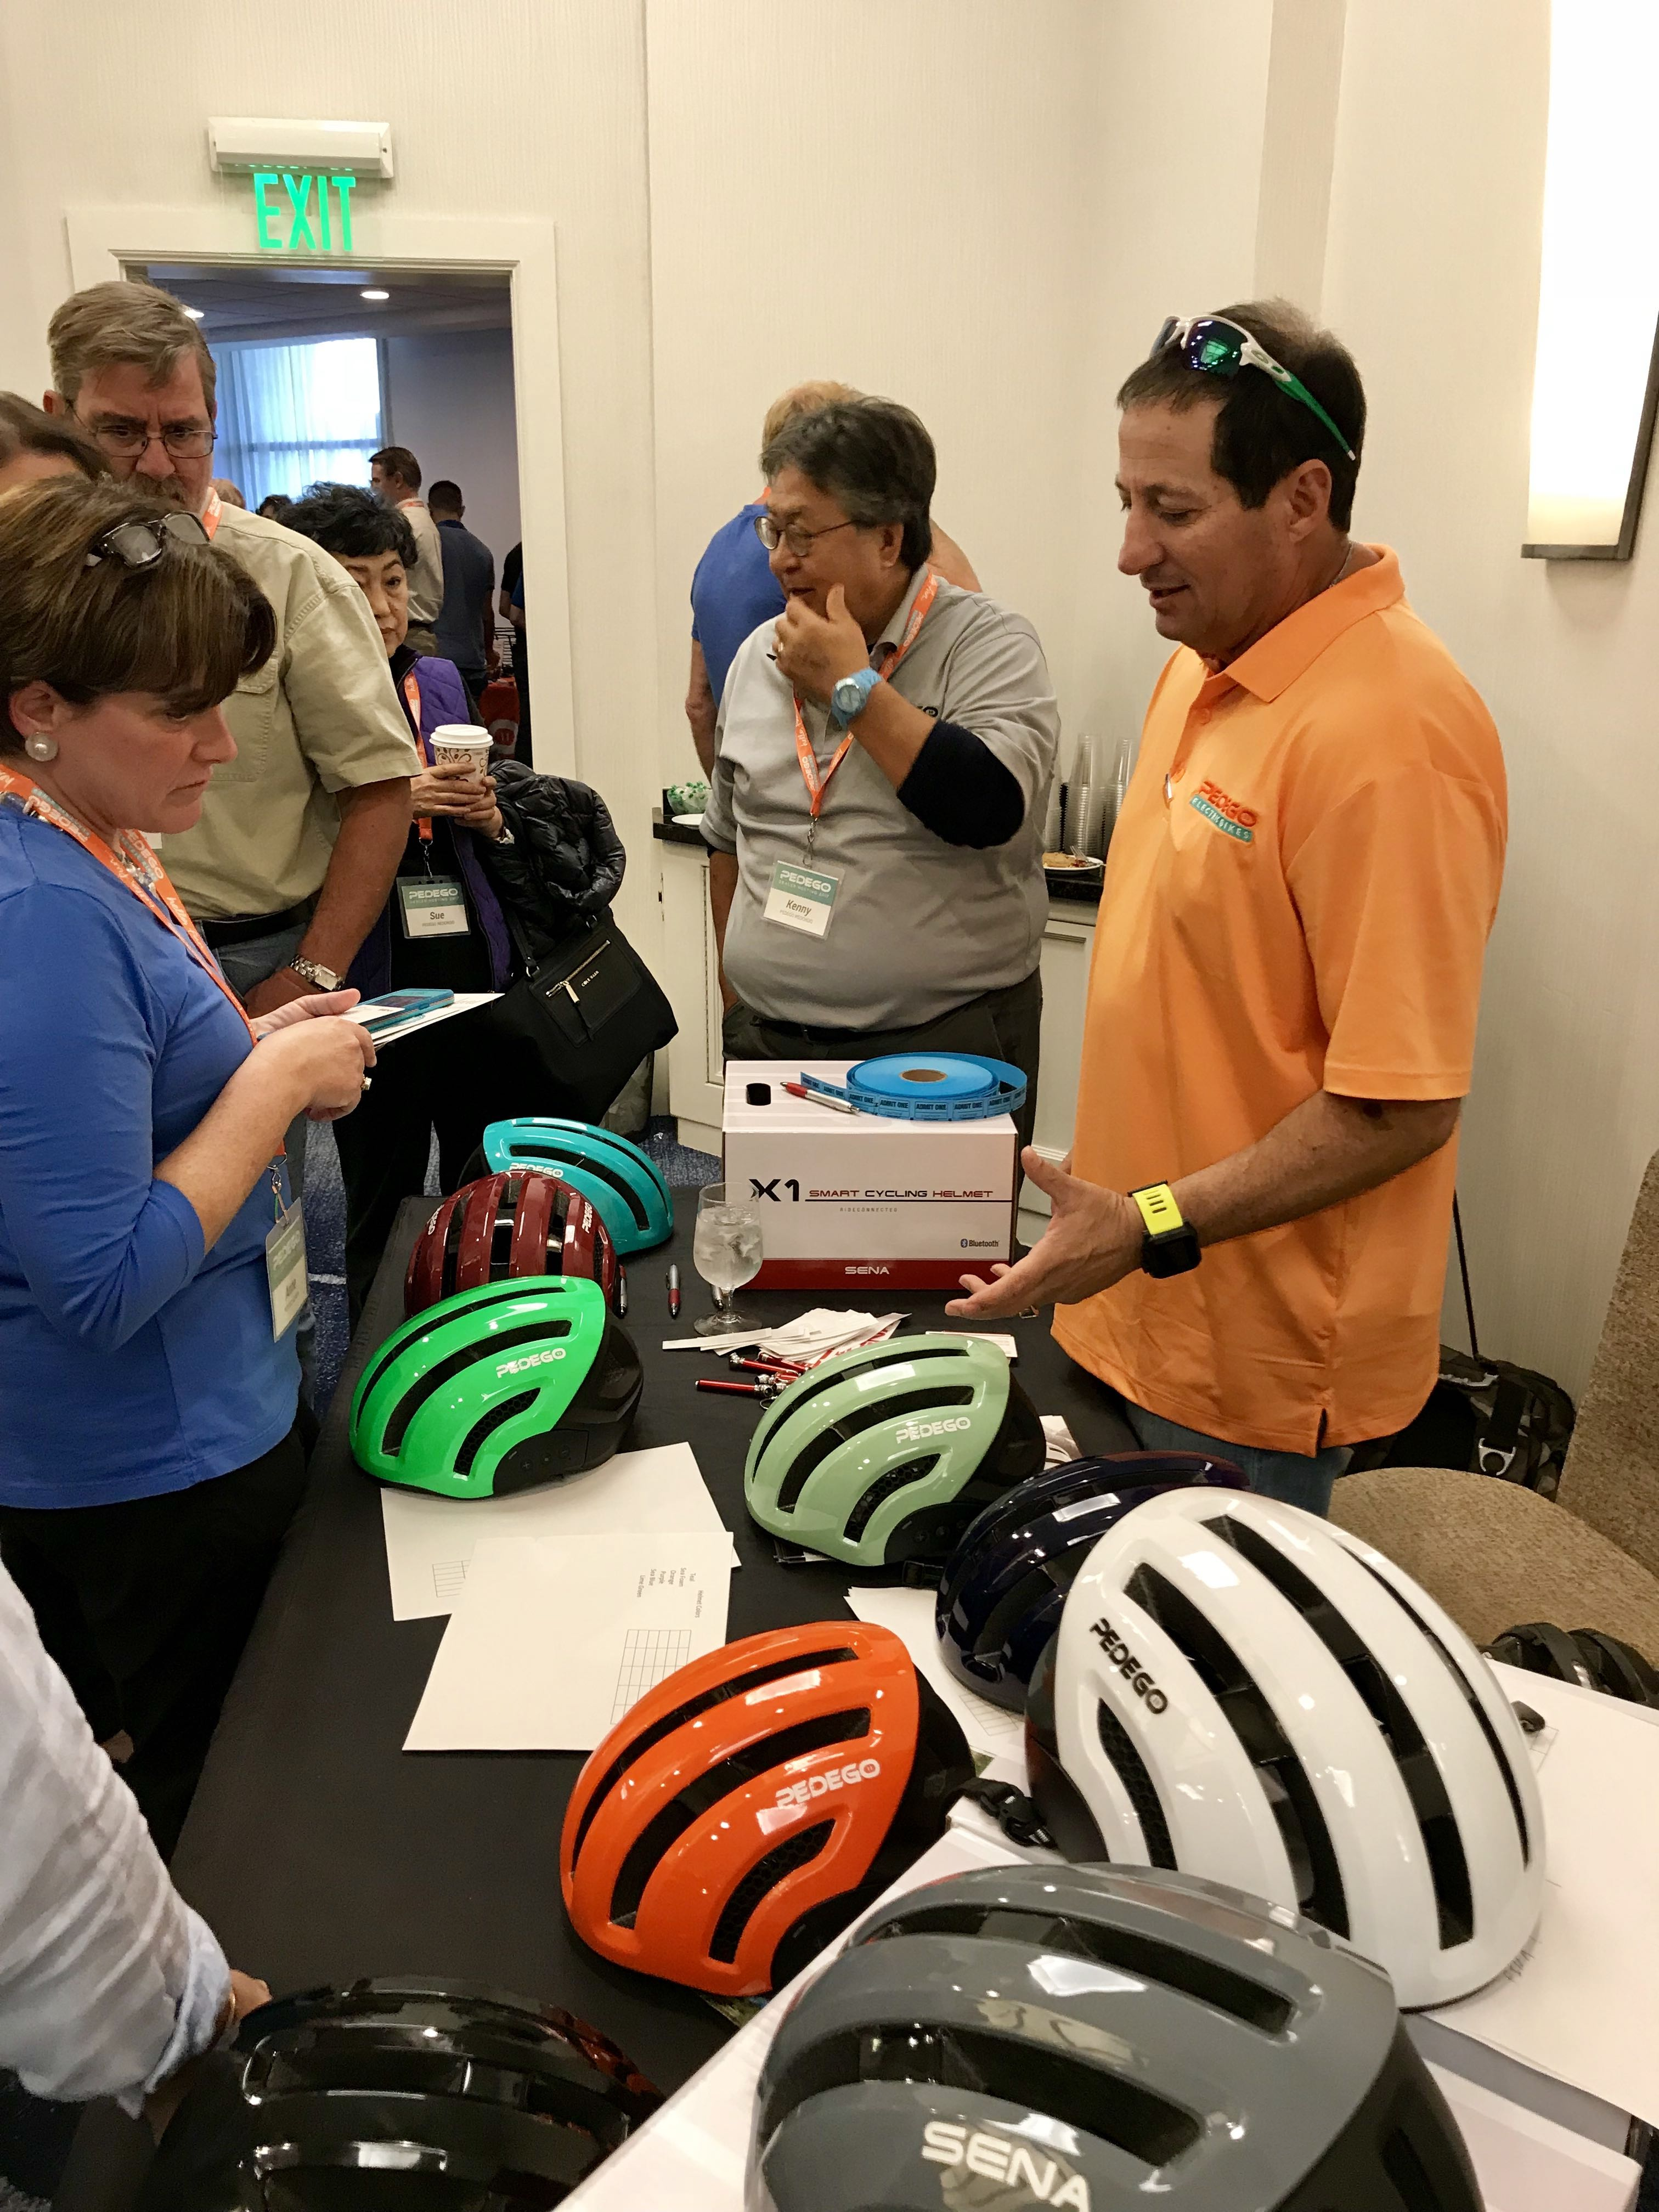 Several new parts and accessories brands exhibited at the event, including new partners Thule, Brooks, Sena Helmets and several others.